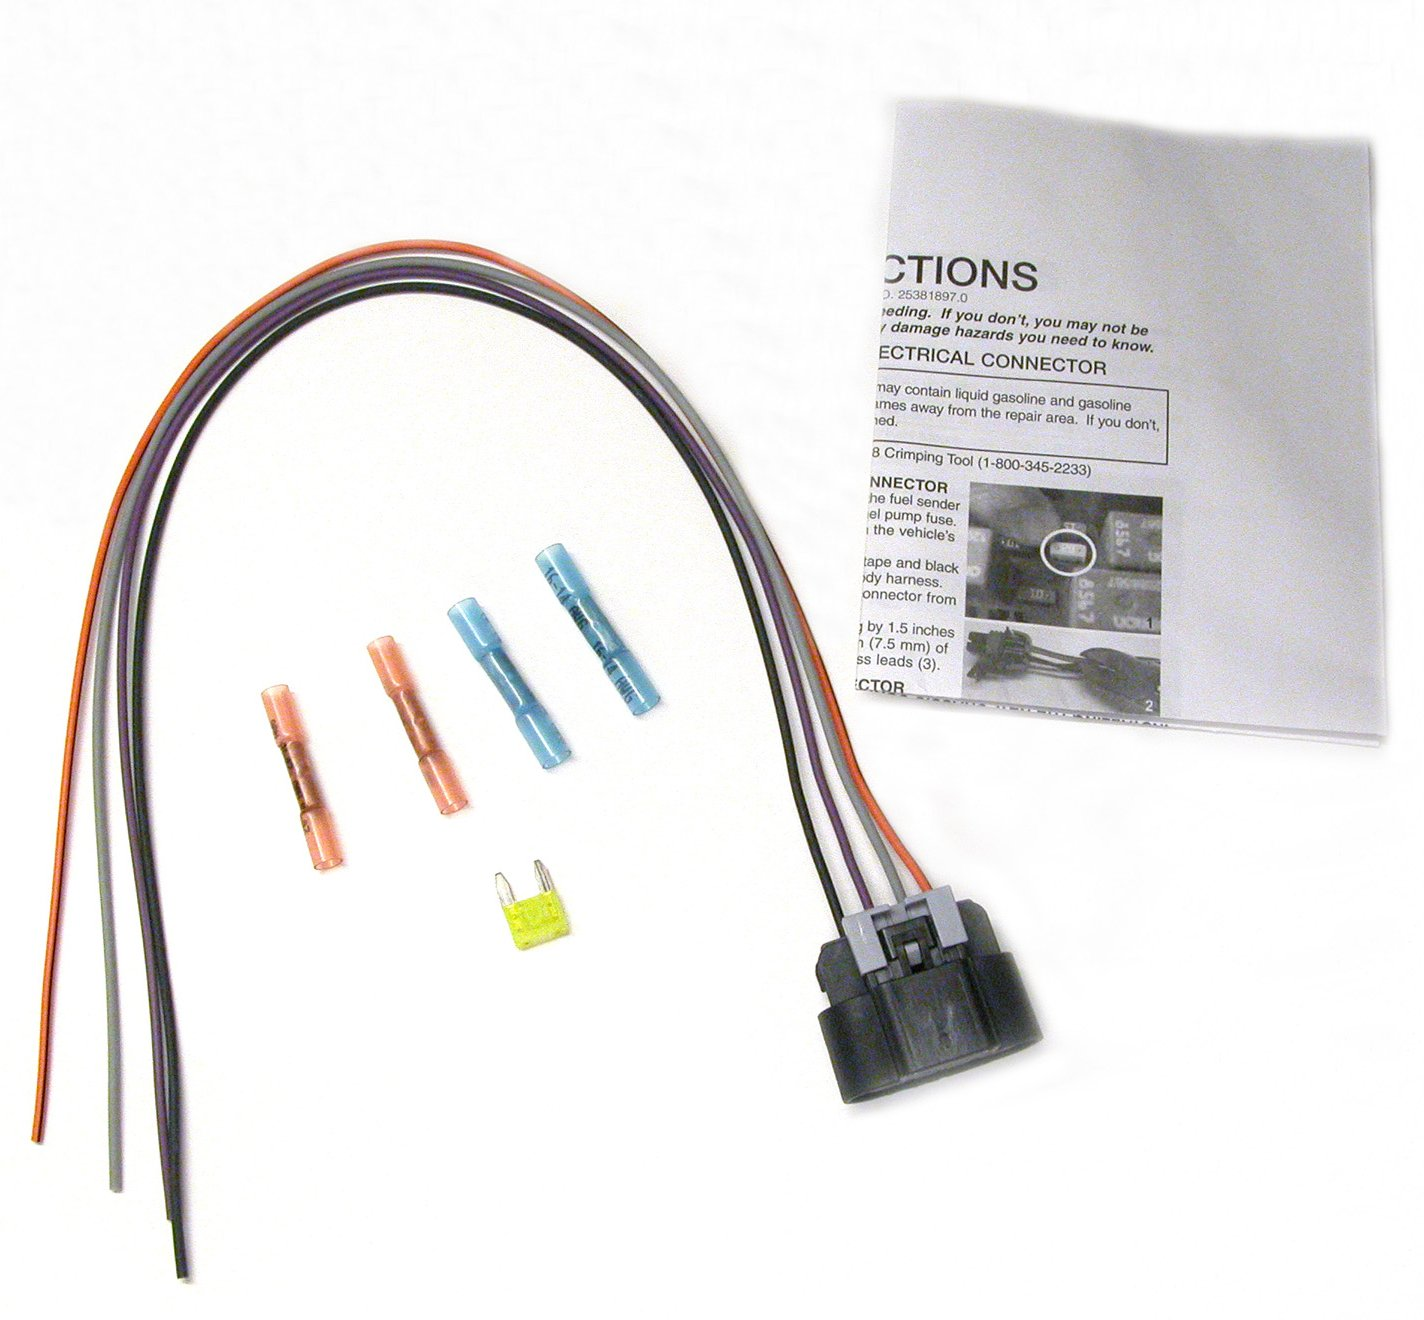 71Grf8PrFuL._SL1424_ amazon com delphi fa10003 fuel pump wiring harness automotive 1997 Jeep Wrangler Fuel Pump at gsmx.co